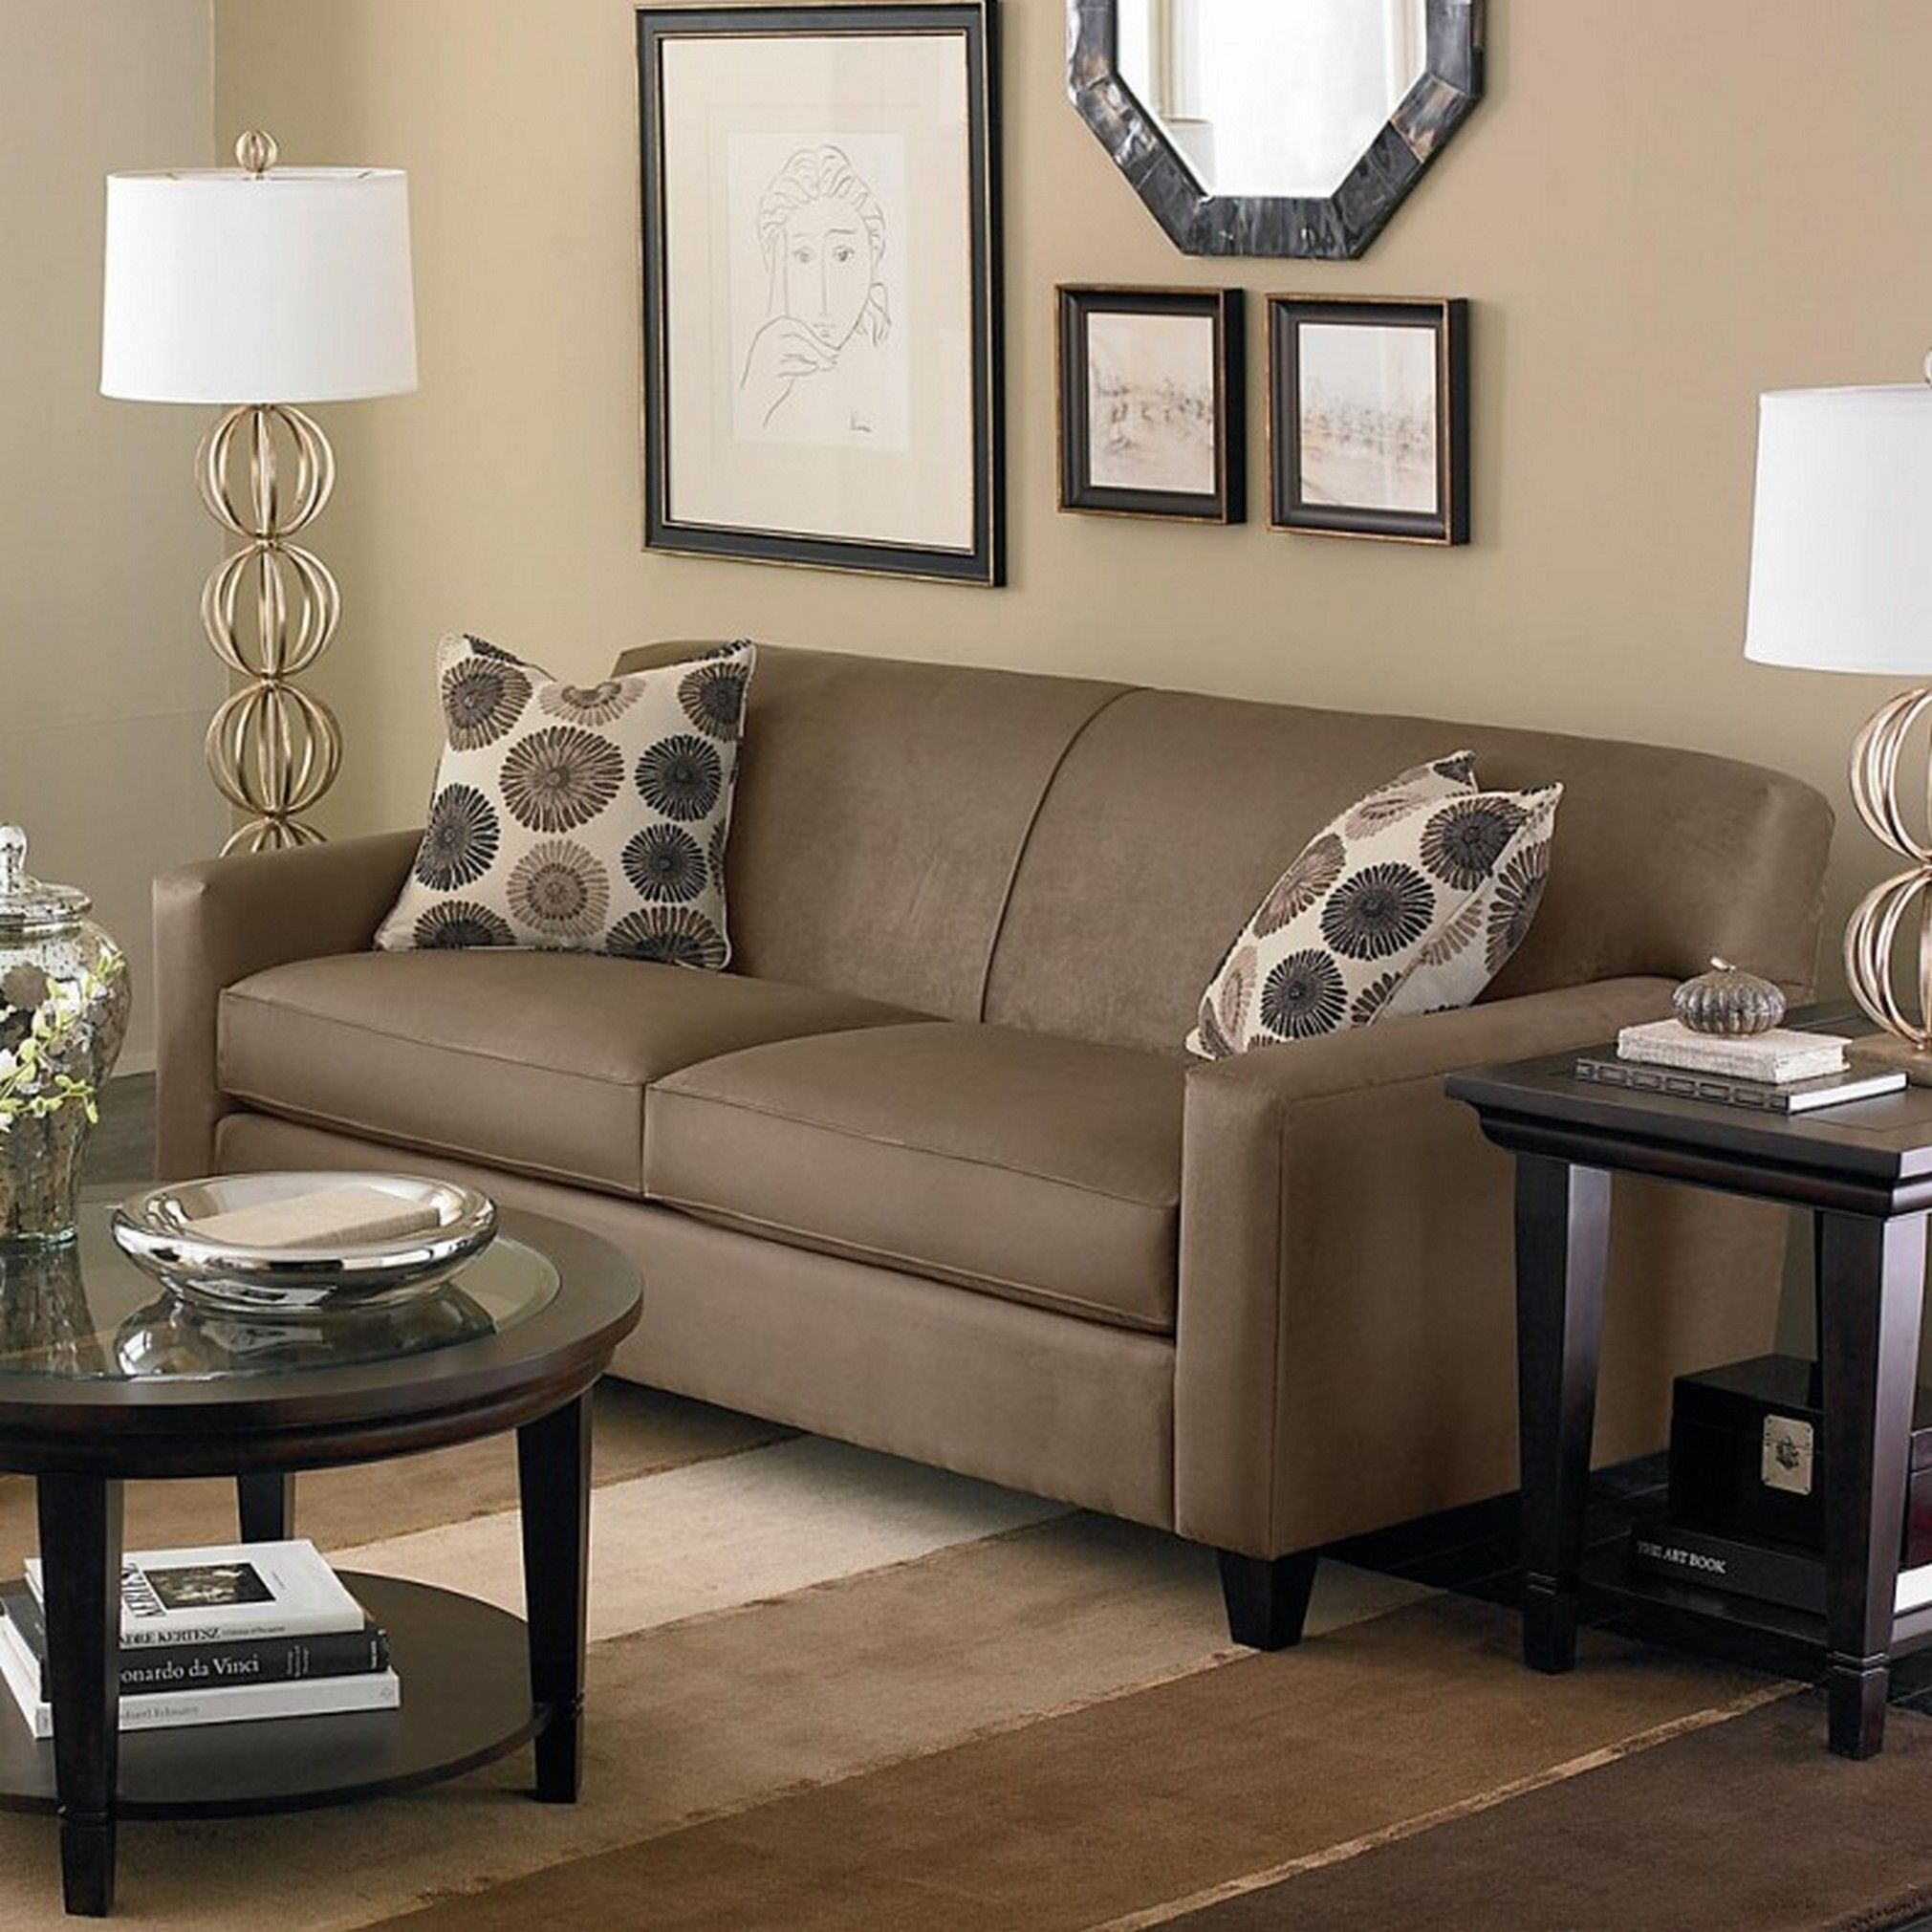 1000 images about tan wall on pinterest dark brown sofas brown sofas and tan walls brown furniture wall color